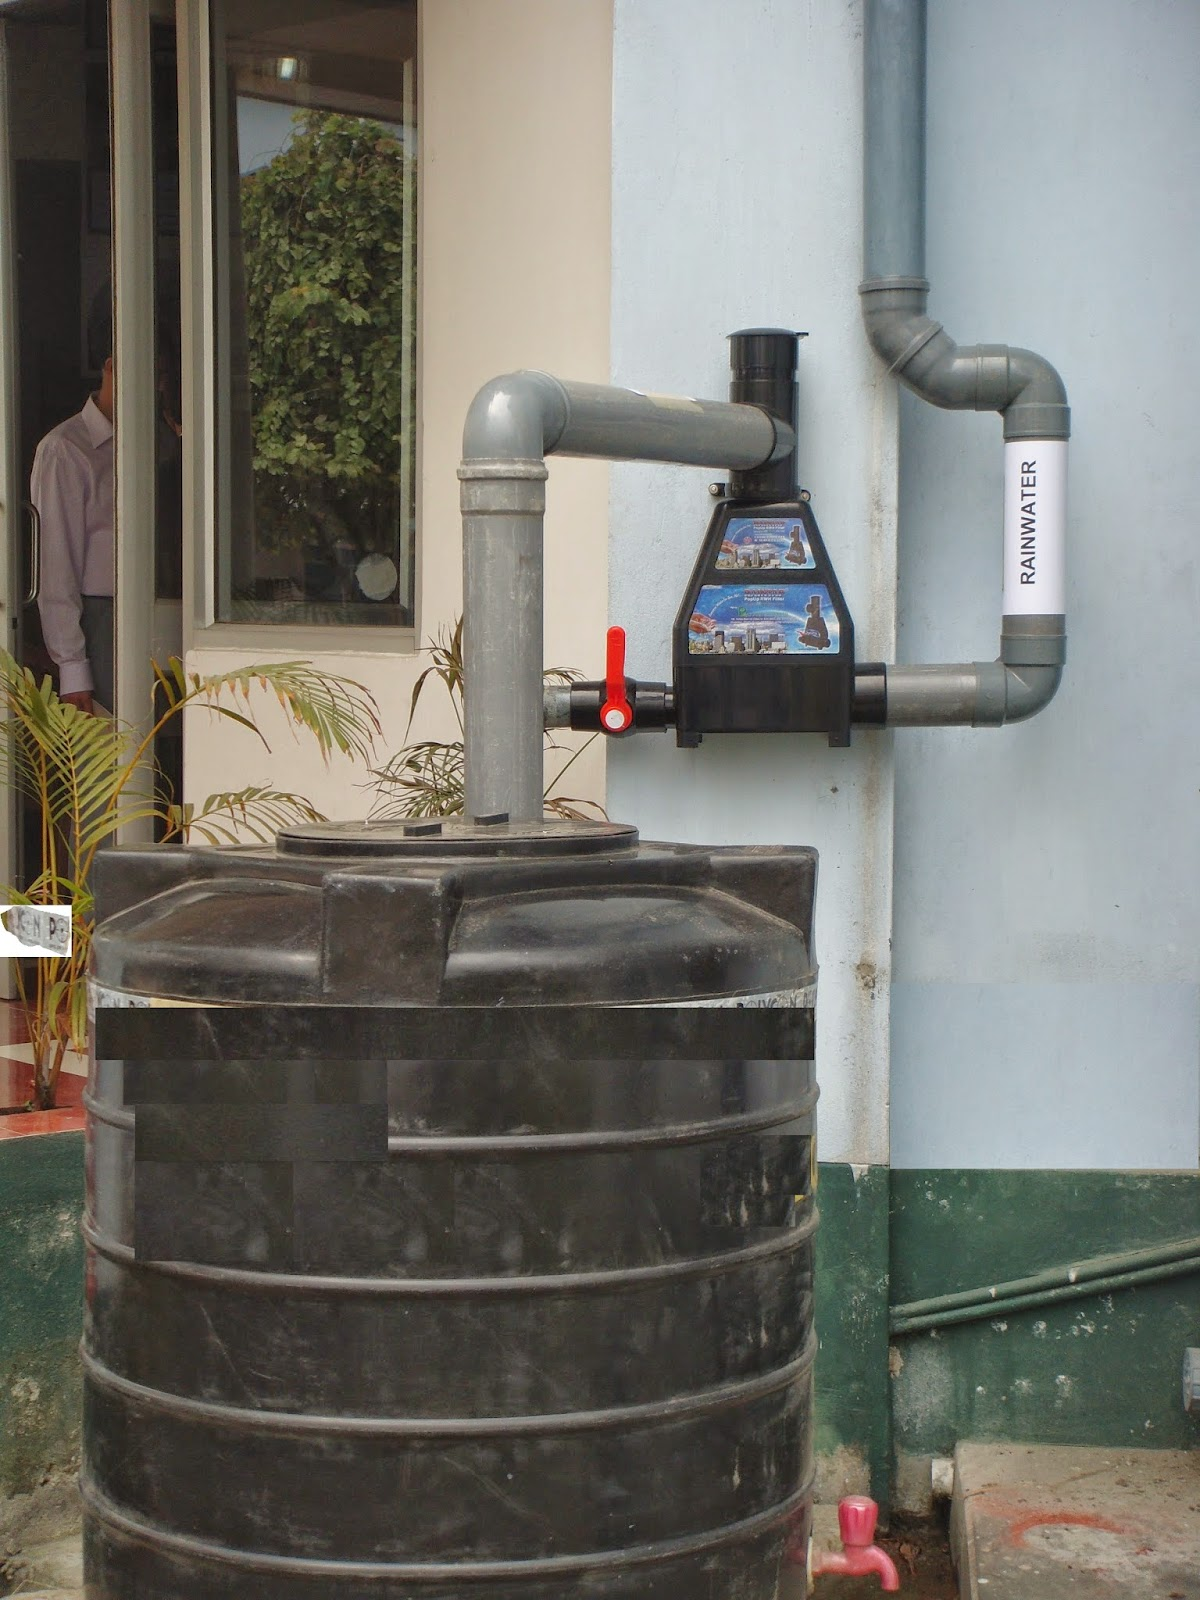 Rainmanspeaks from bangalore popup filter for rainwater harvesting kscst had transferred the technology to raj irritech pvt ltd ahmedabad gujarat for commercial production and marketing between sep 2009 till sep 2014 sciox Images